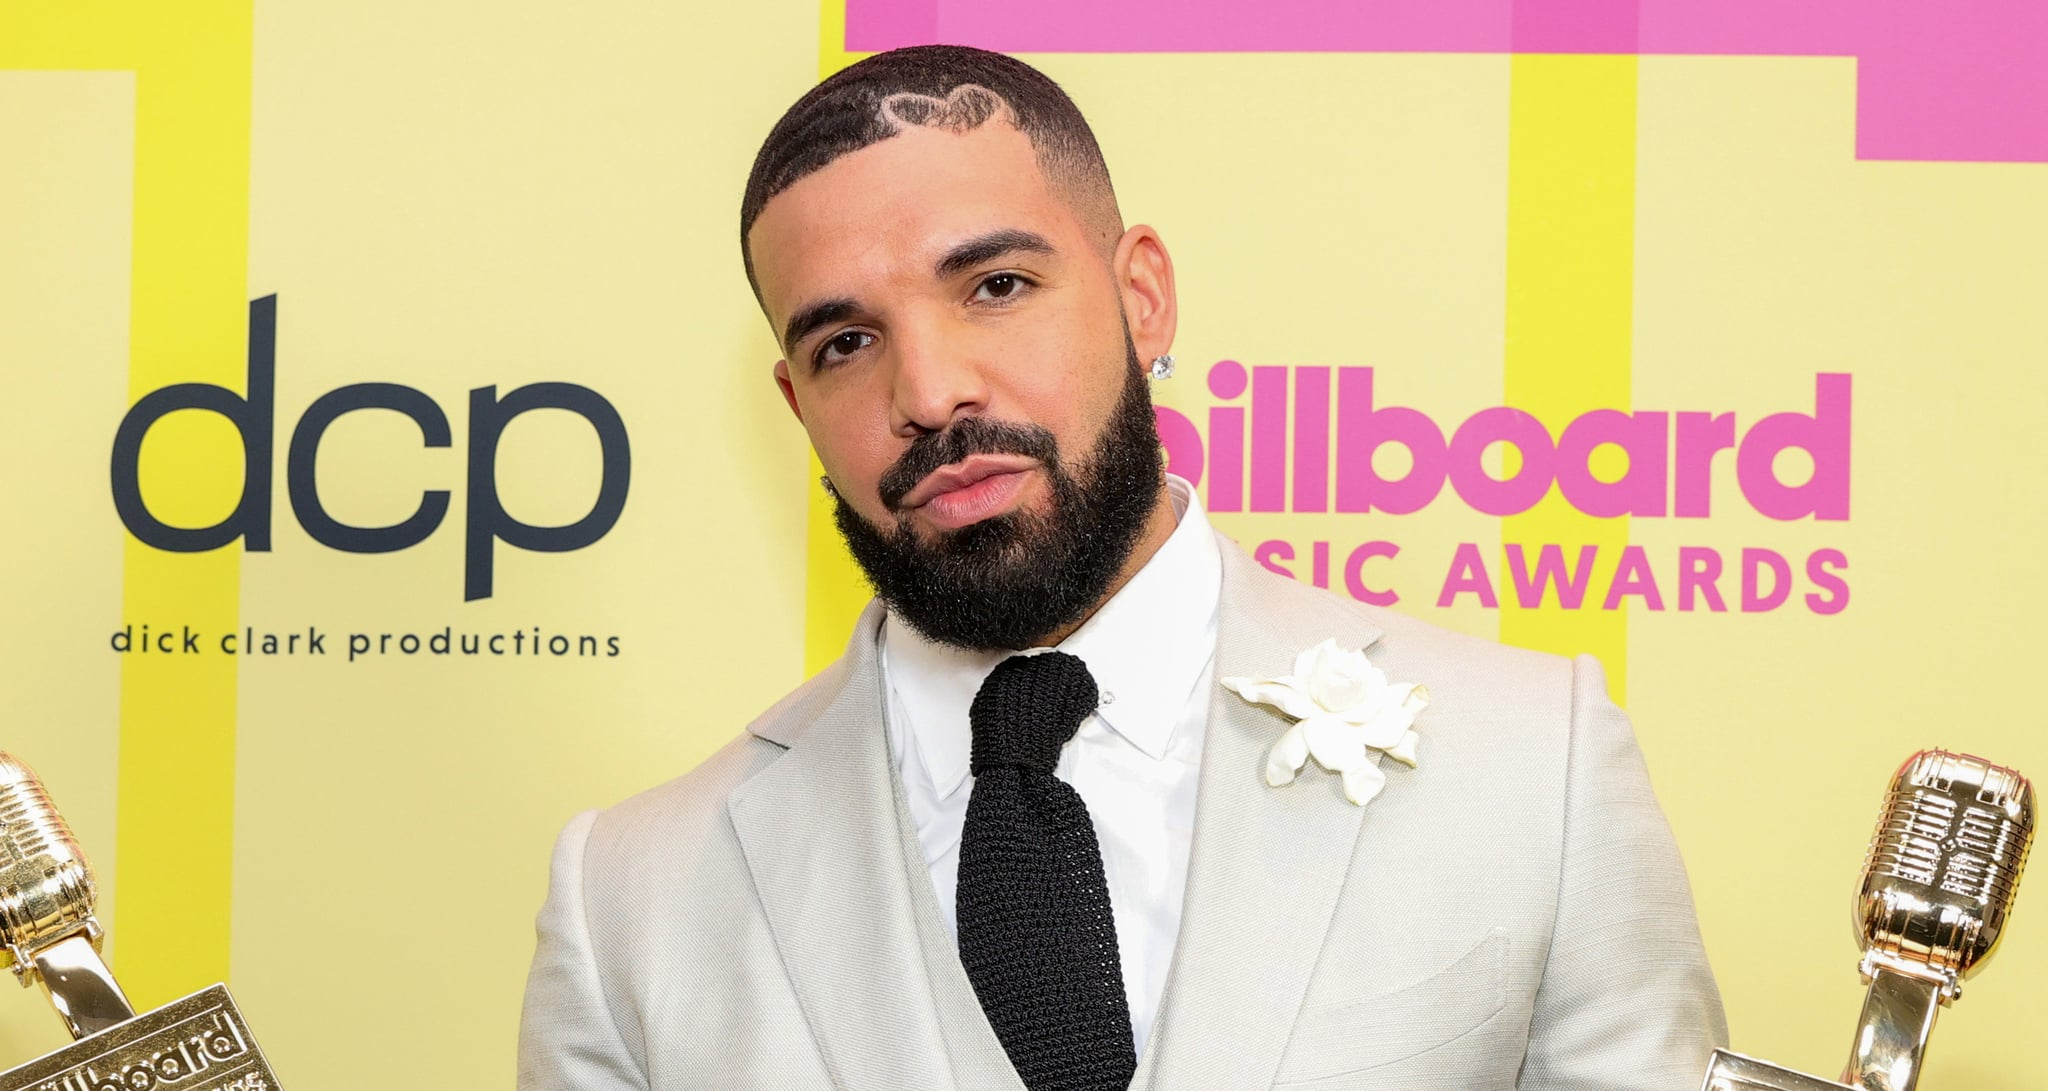 LOS ANGELES, CALIFORNIA - MAY 23: Drake, winner of the Artist of the Decade Award, poses backstage for the 2021 Billboard Music Awards, broadcast on May 23, 2021 at Microsoft Theatre in Los Angeles, California. (Photo by Rich Fury/Getty Images for dcp)